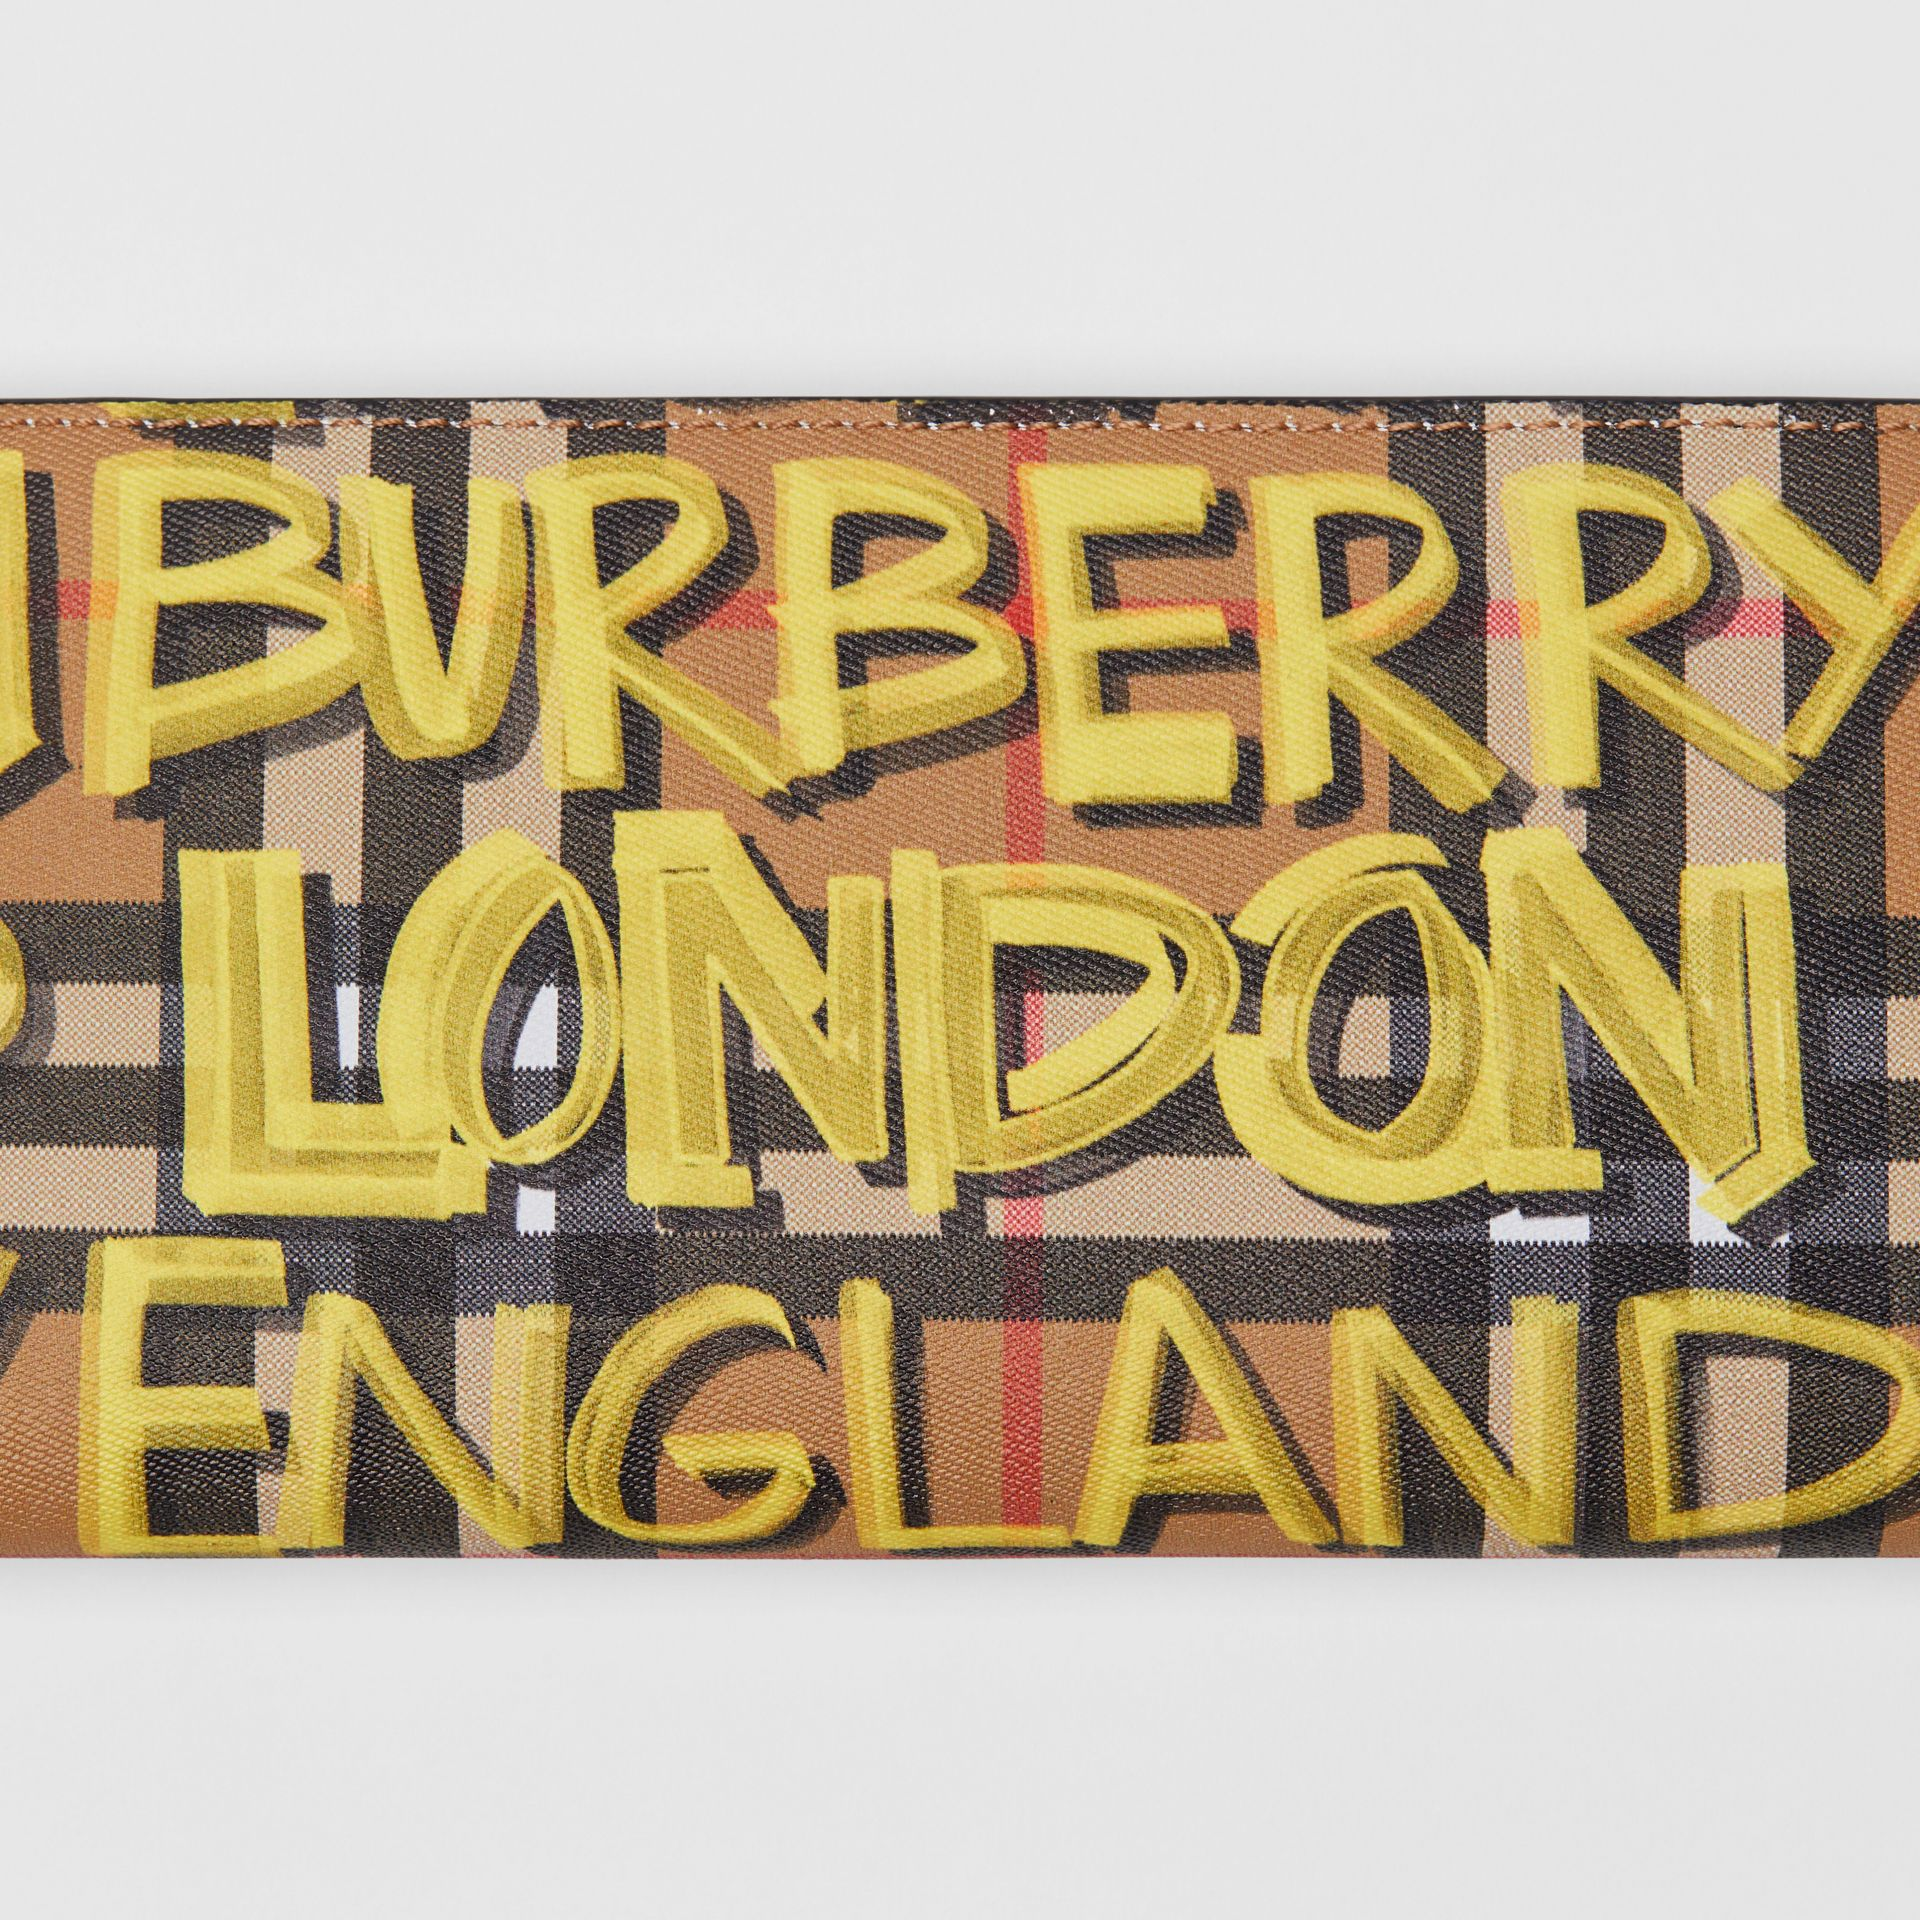 Graffiti Print Vintage Check Leather Continental Wallet in Multicolour - Men | Burberry Canada - gallery image 1